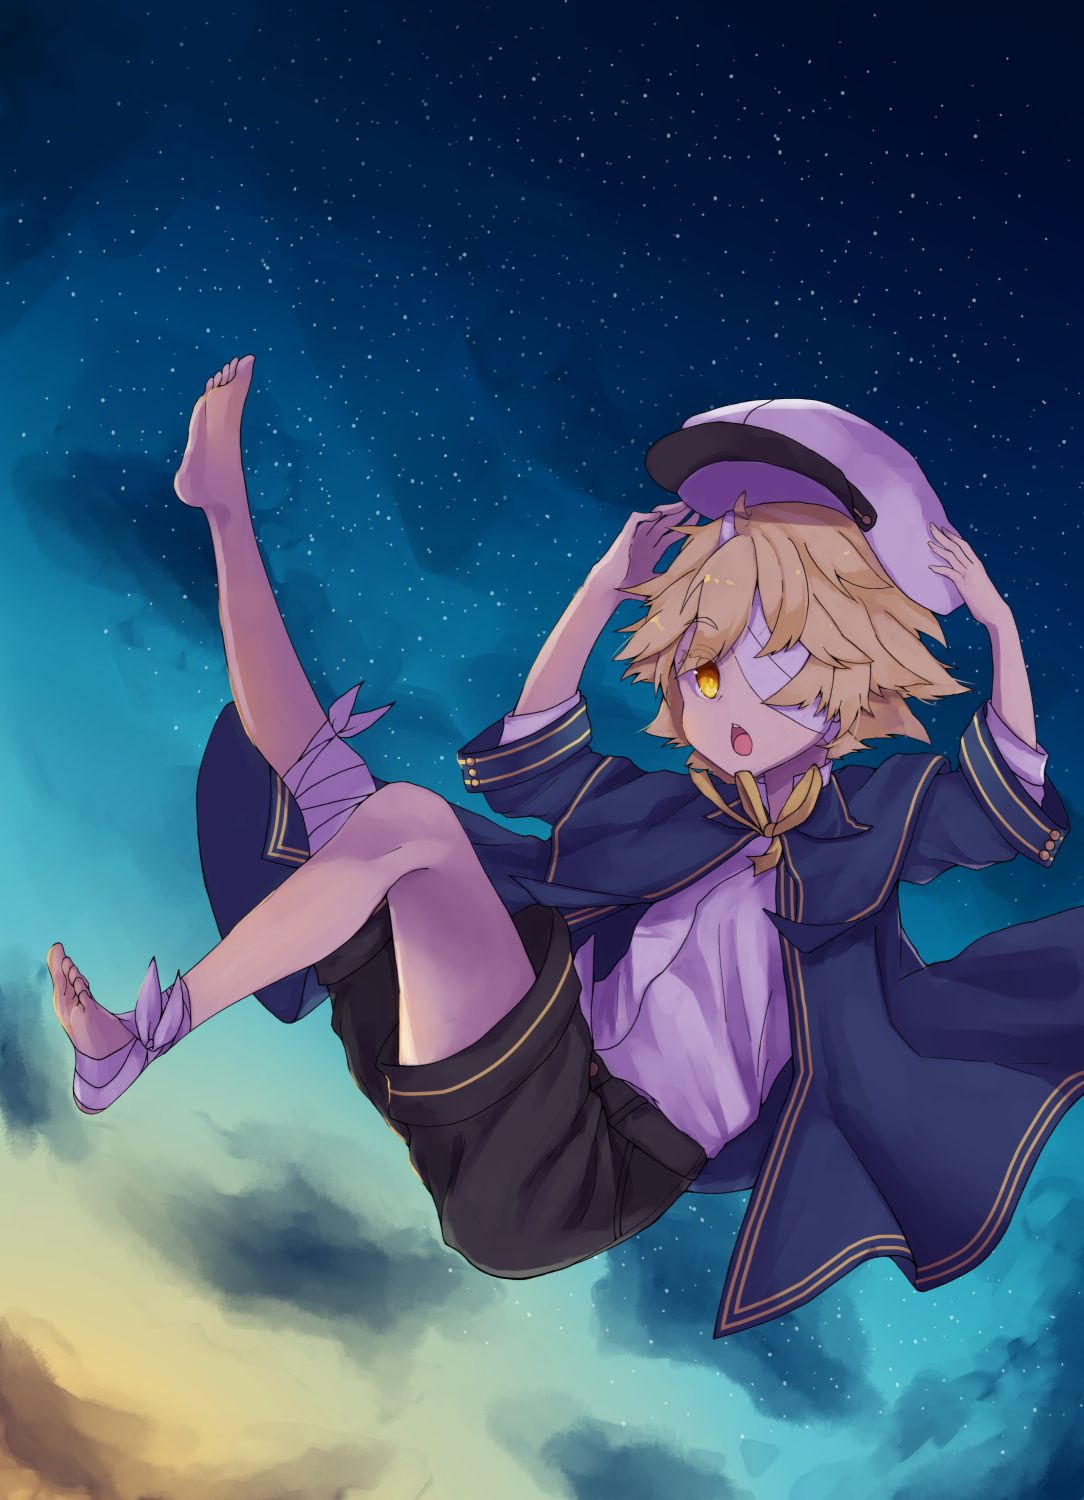 Oliver Vocaloid, Anime, Anime images